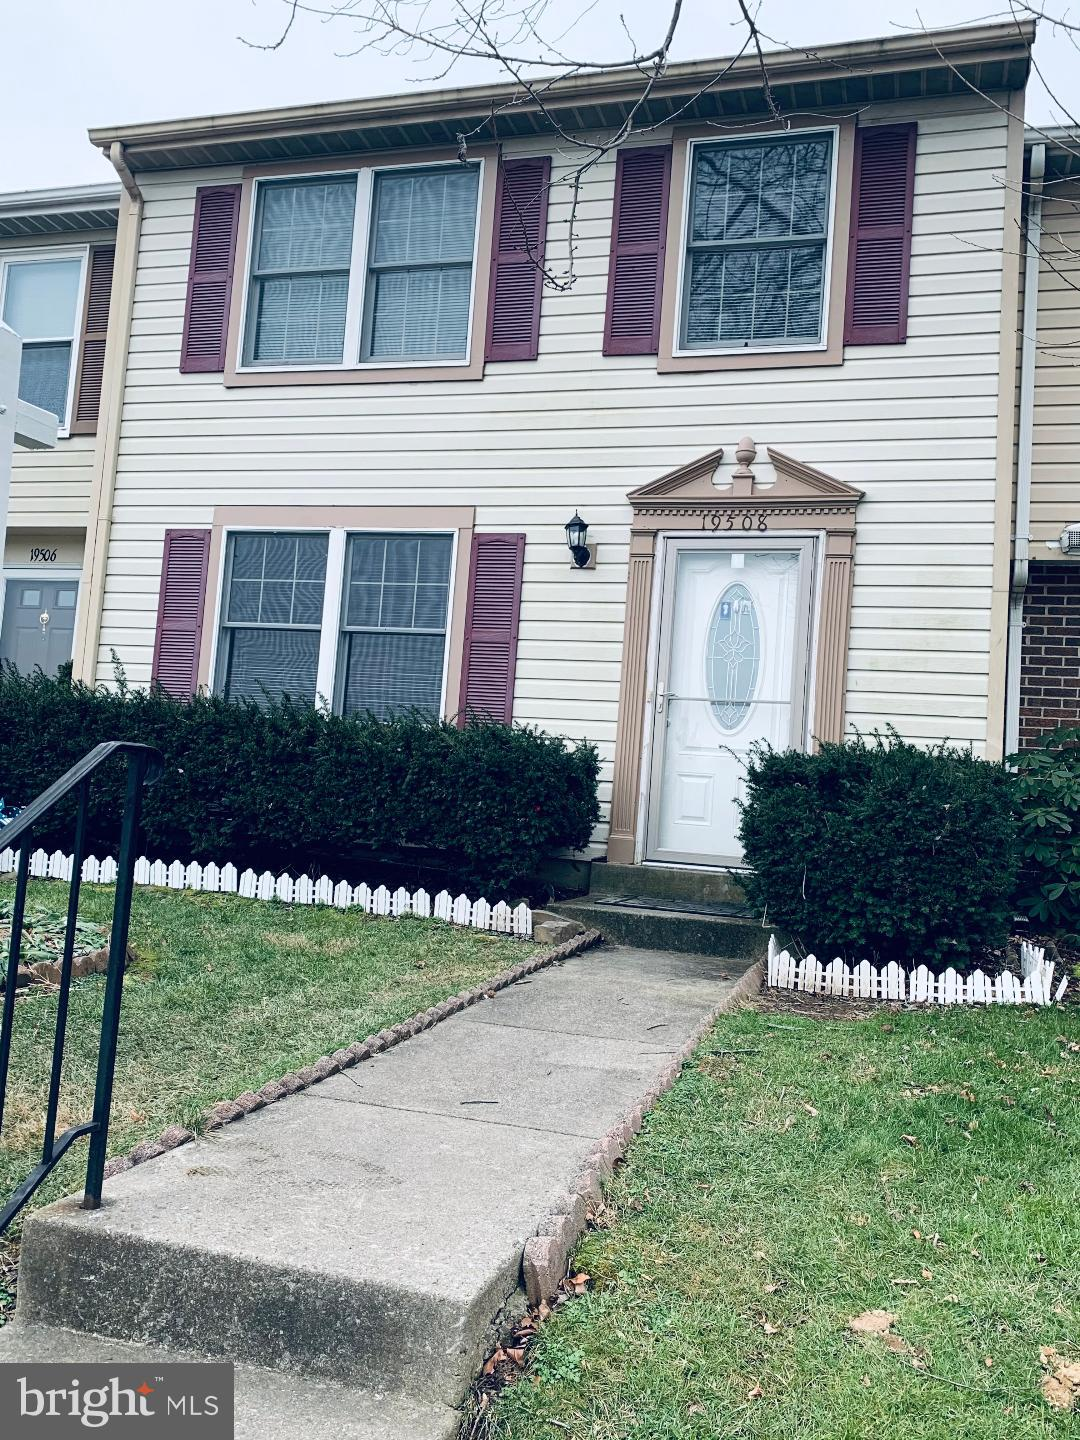 LOCATION LOCATION LOCATION ... CLOSE TO SHOPPING CENTER HOSPITAL AND MORE ...SPECTACULAR TOWNHOME WI